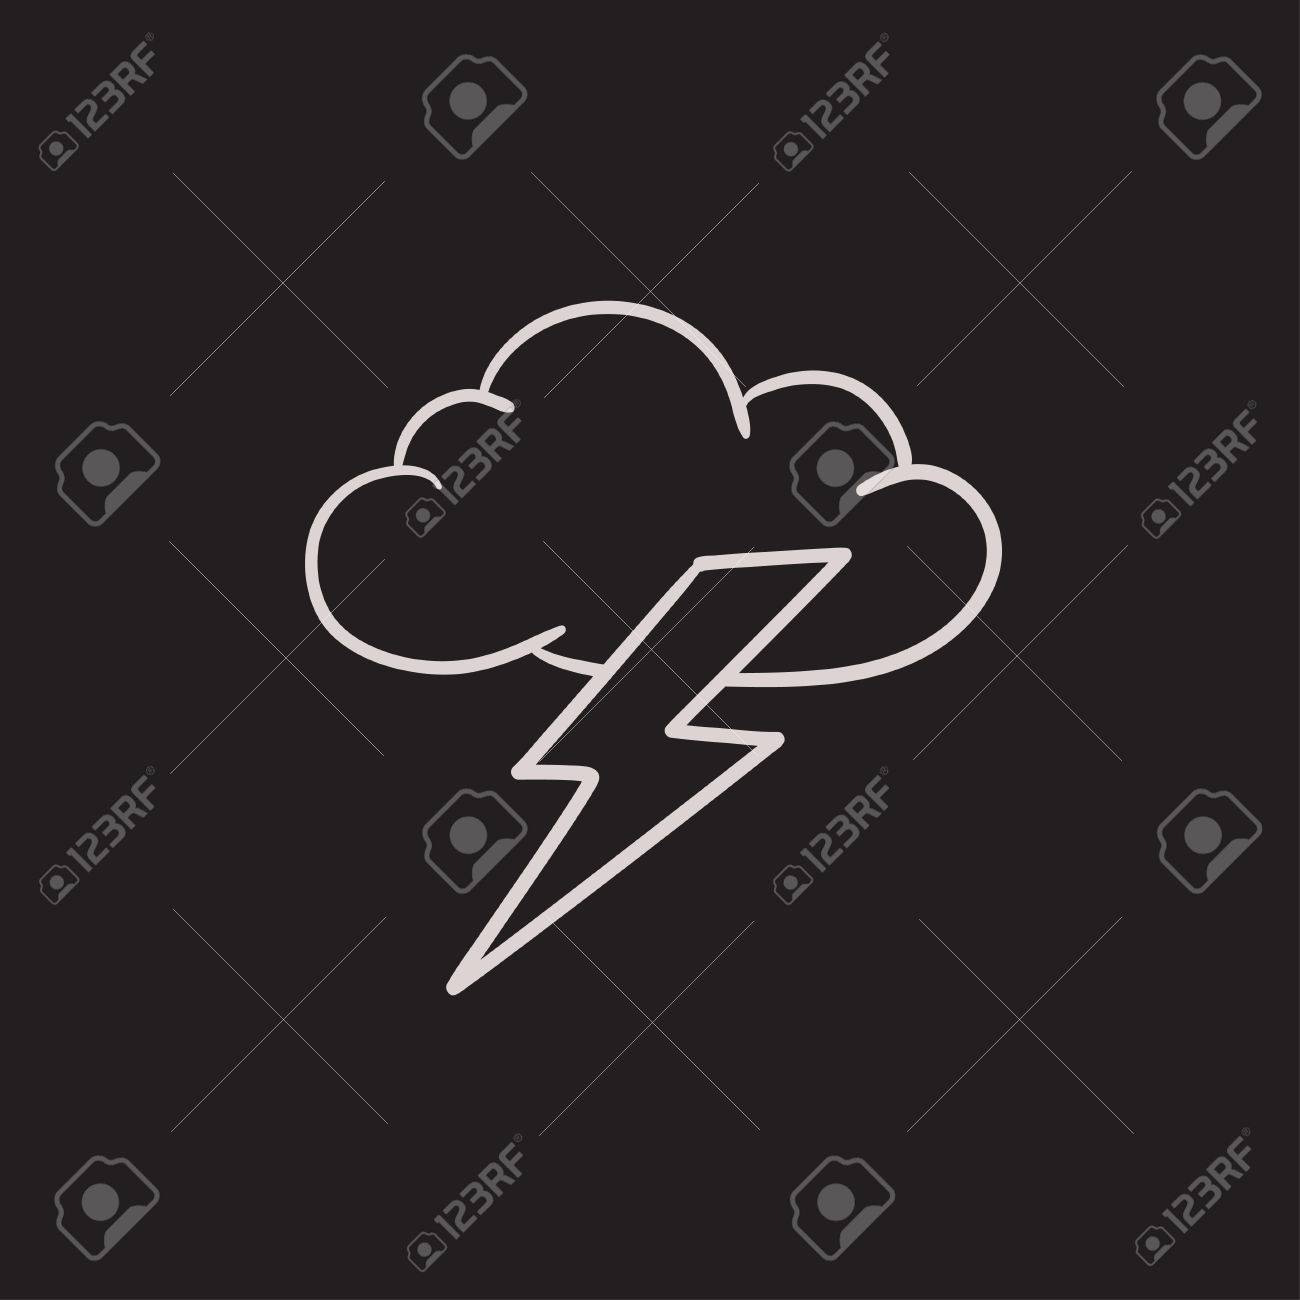 Cloud And Lightning Bolt Vector Sketch Icon Isolated On Background Royalty Free Cliparts Vectors And Stock Illustration Image 63810011